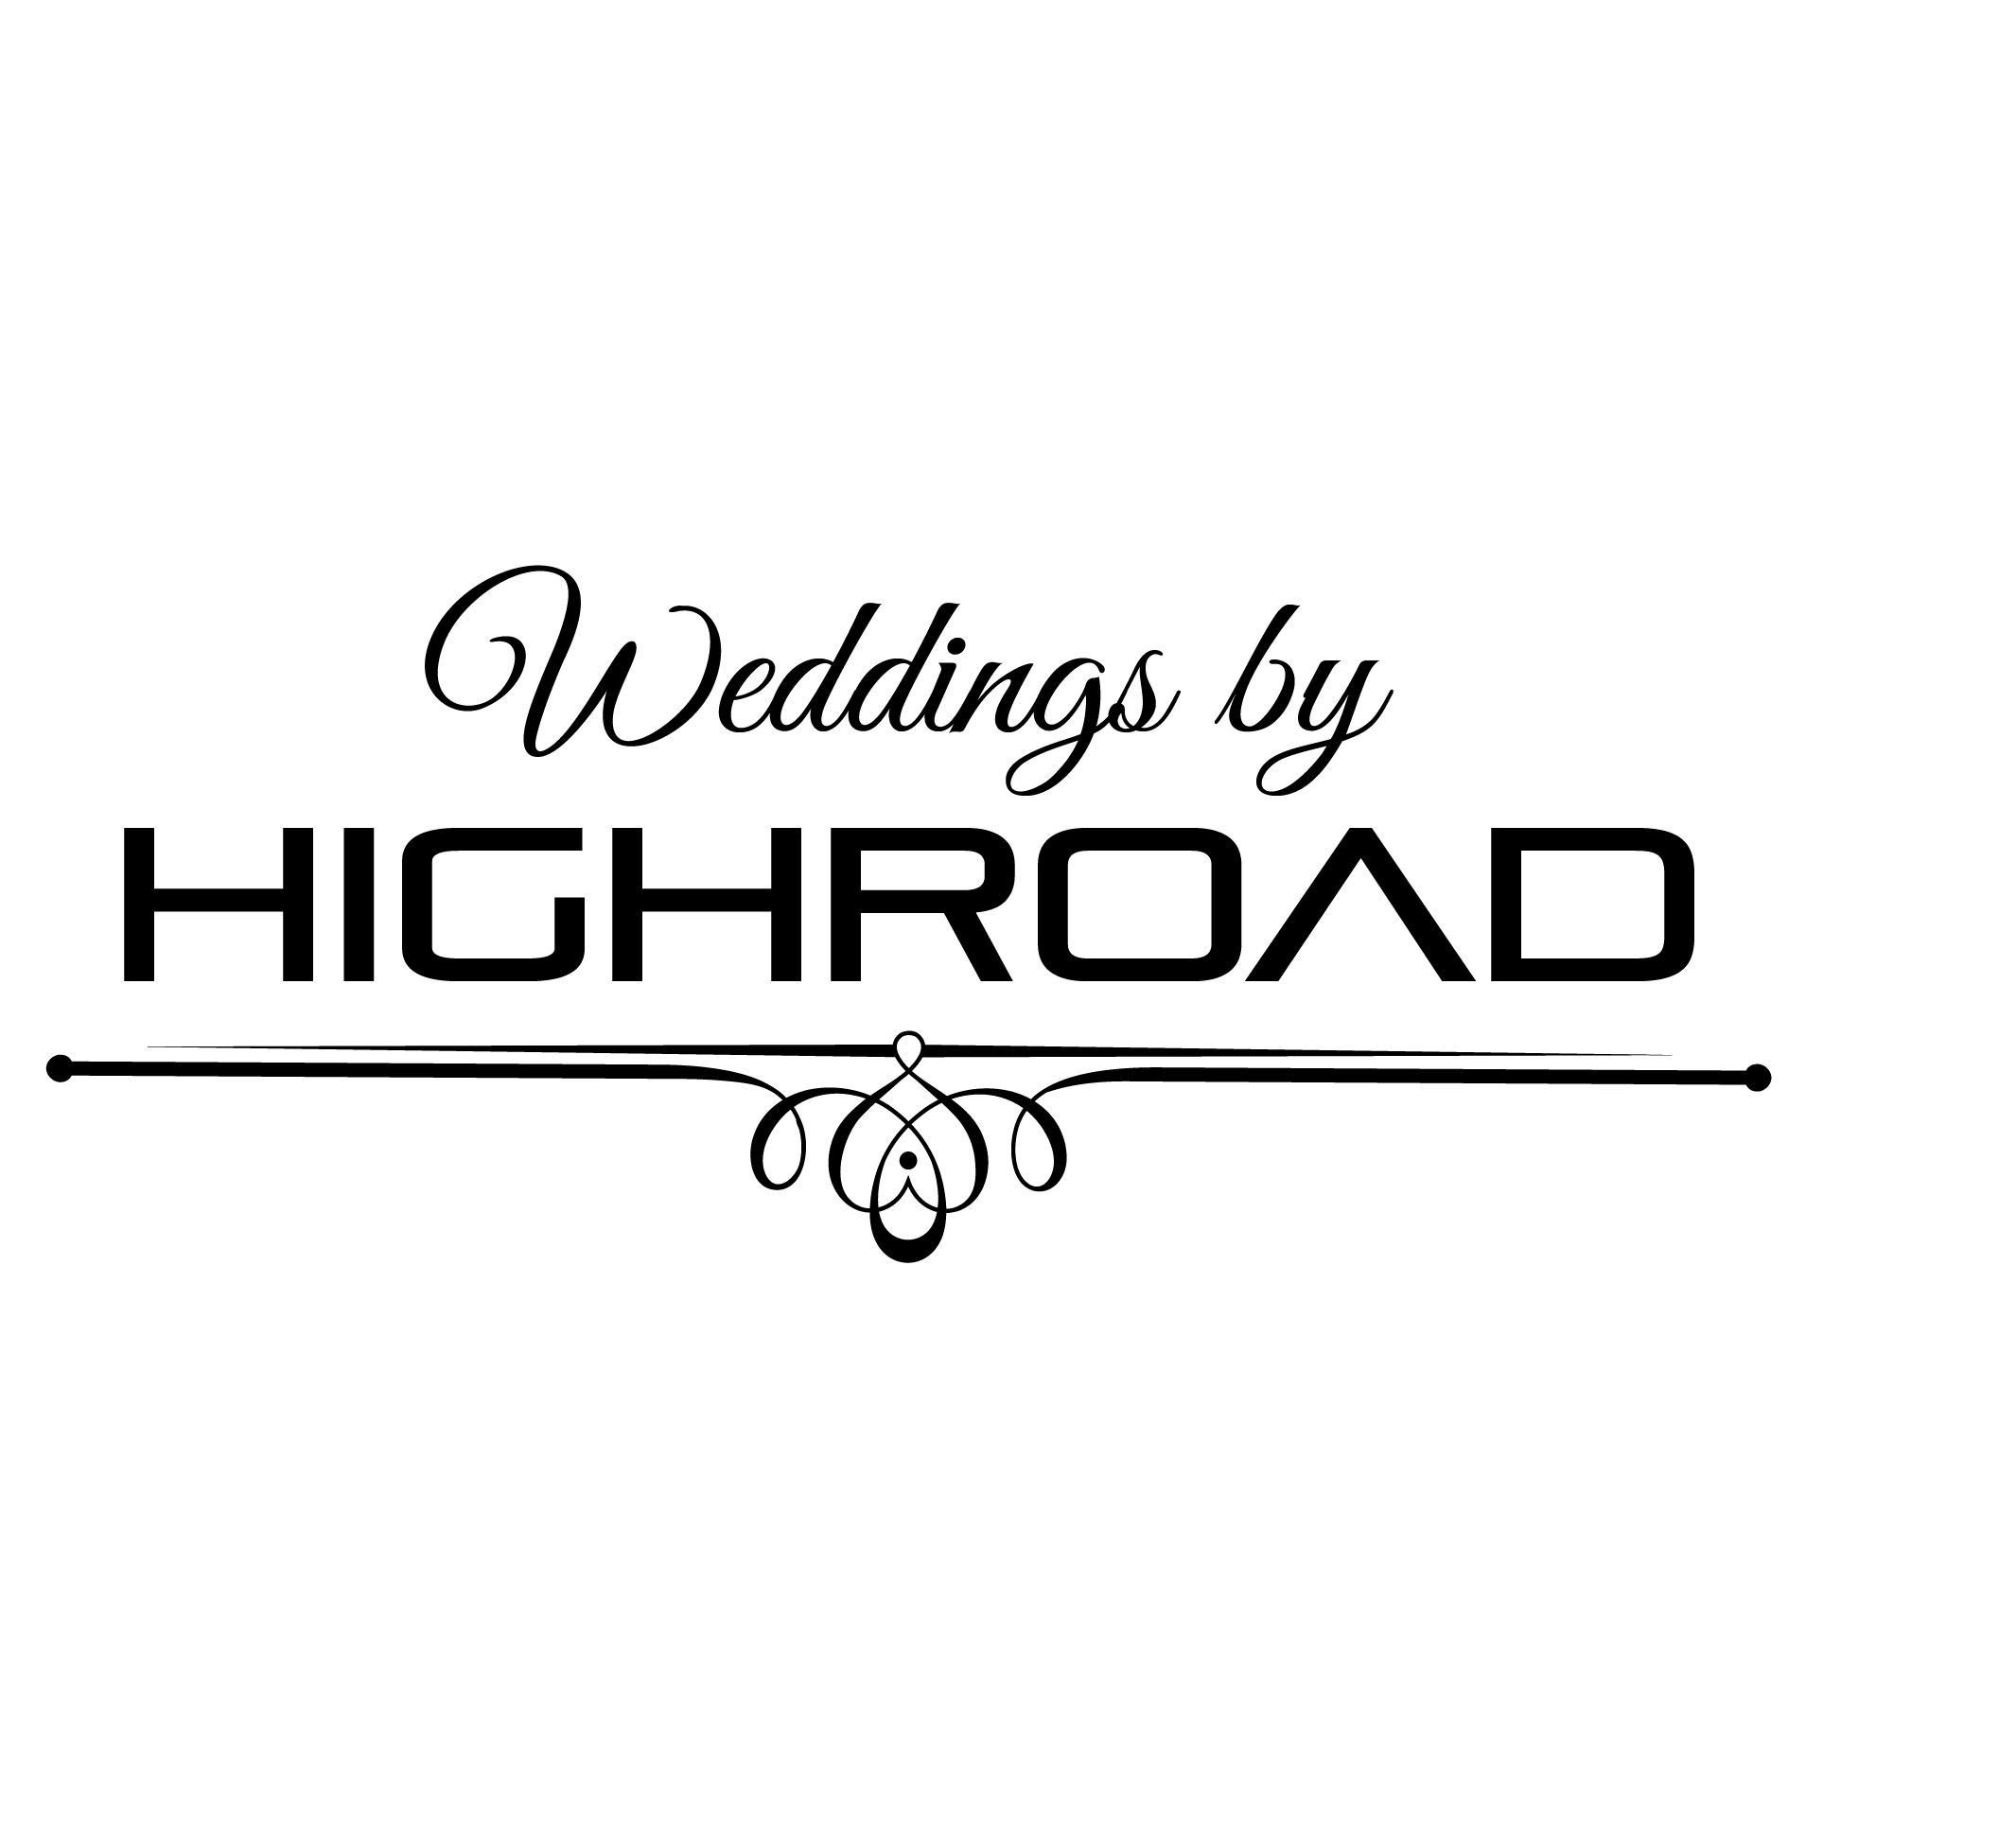 Weddings by Highroad